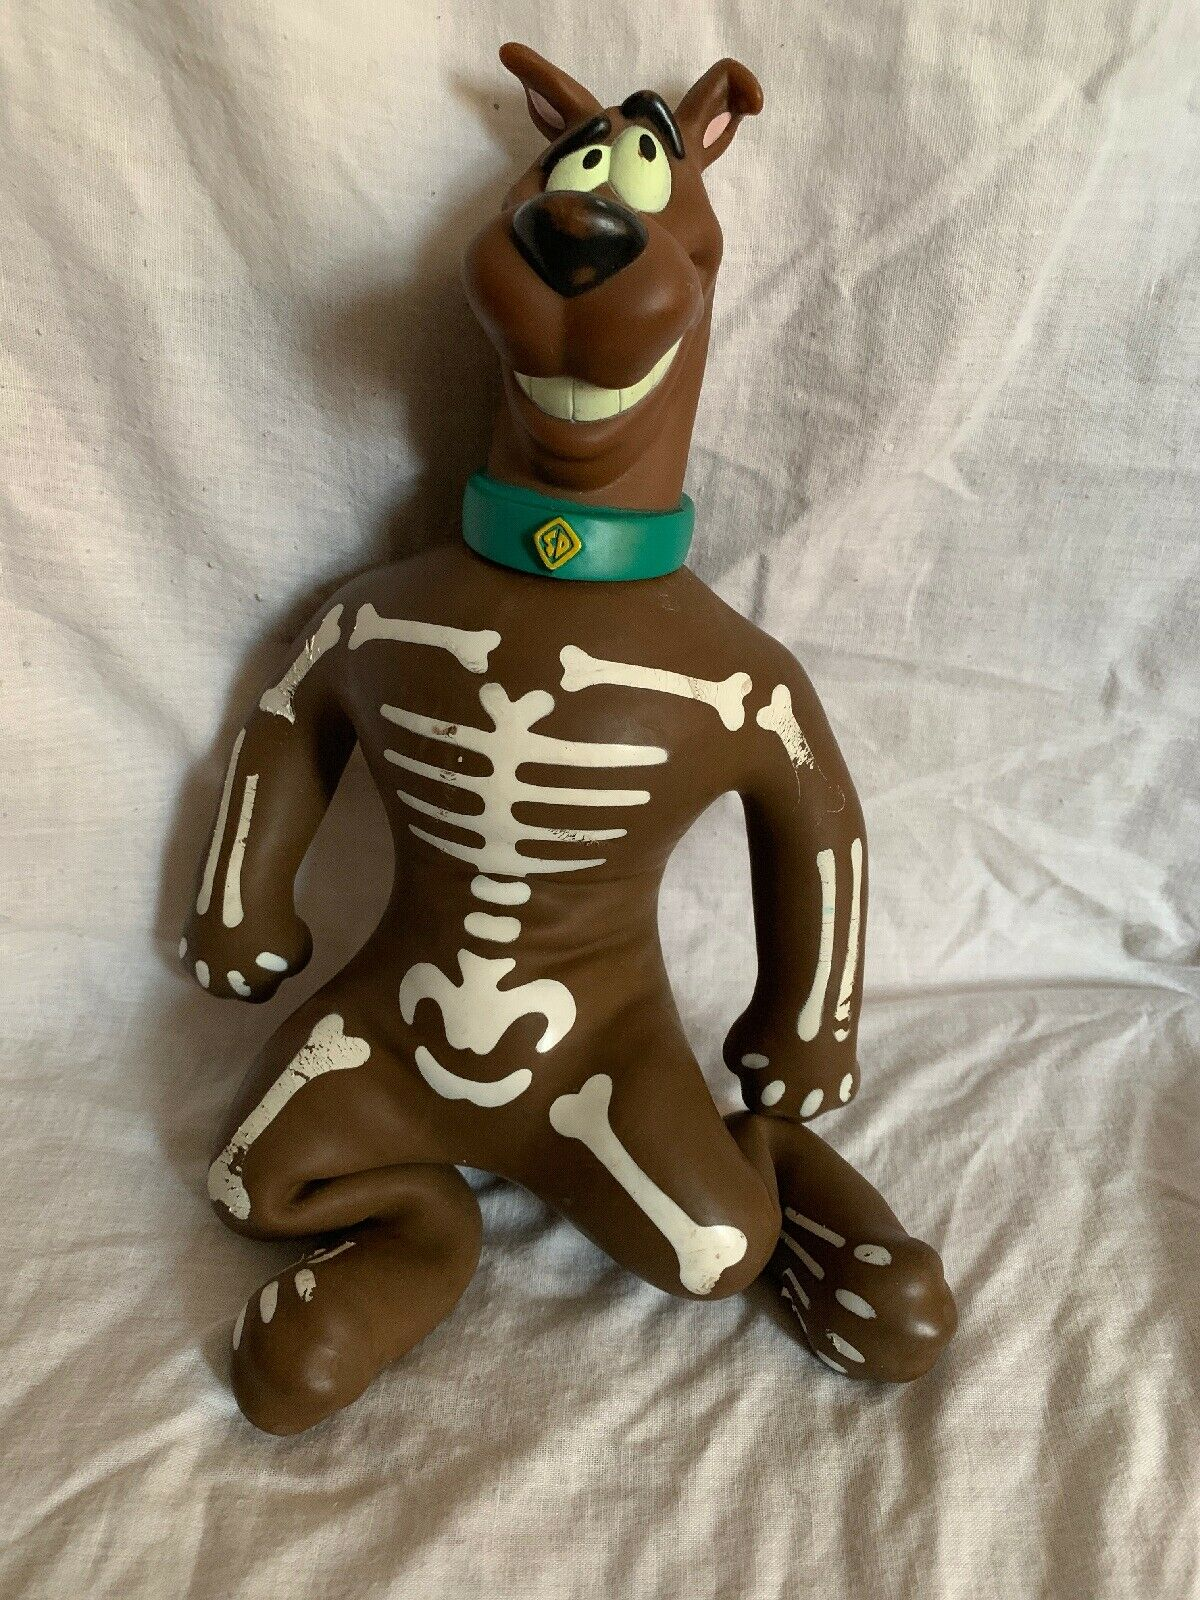 Scooby Doo Figure Stretch Armstrong 06368 7-inch    stretch Scooby  Figure b49698